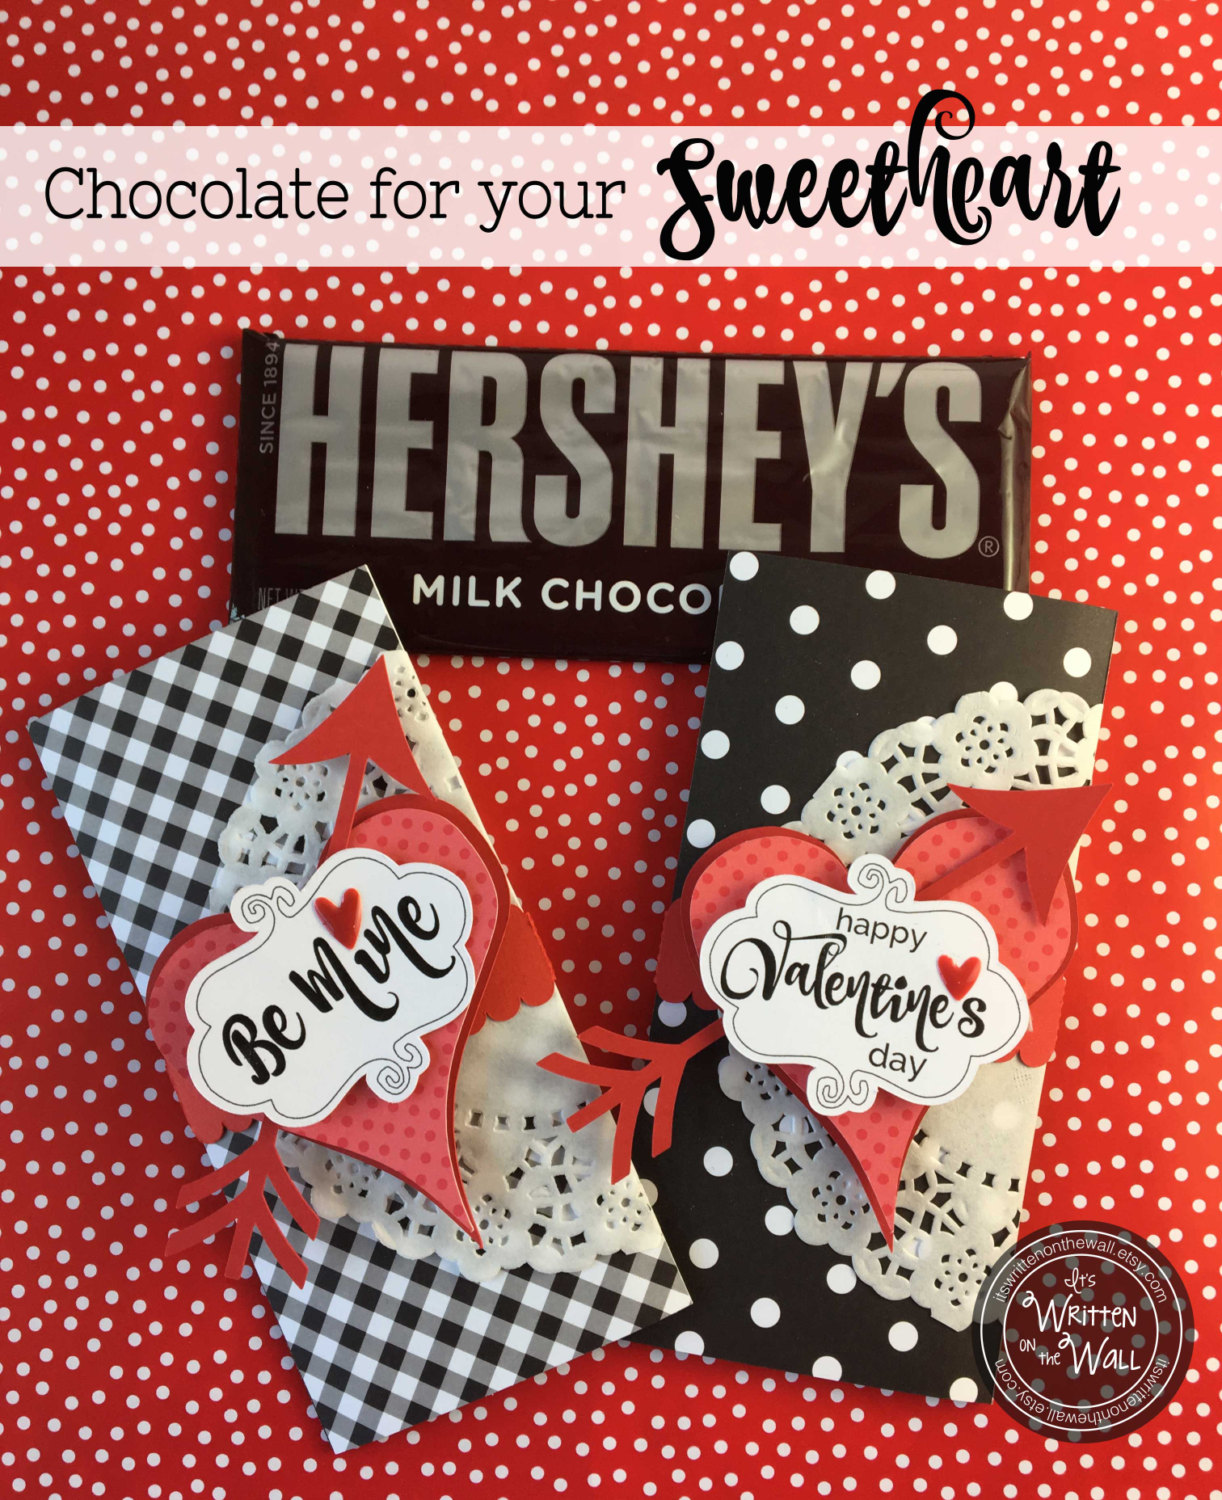 Wrap up Chocolates for your Sweetheart for Valentines Day